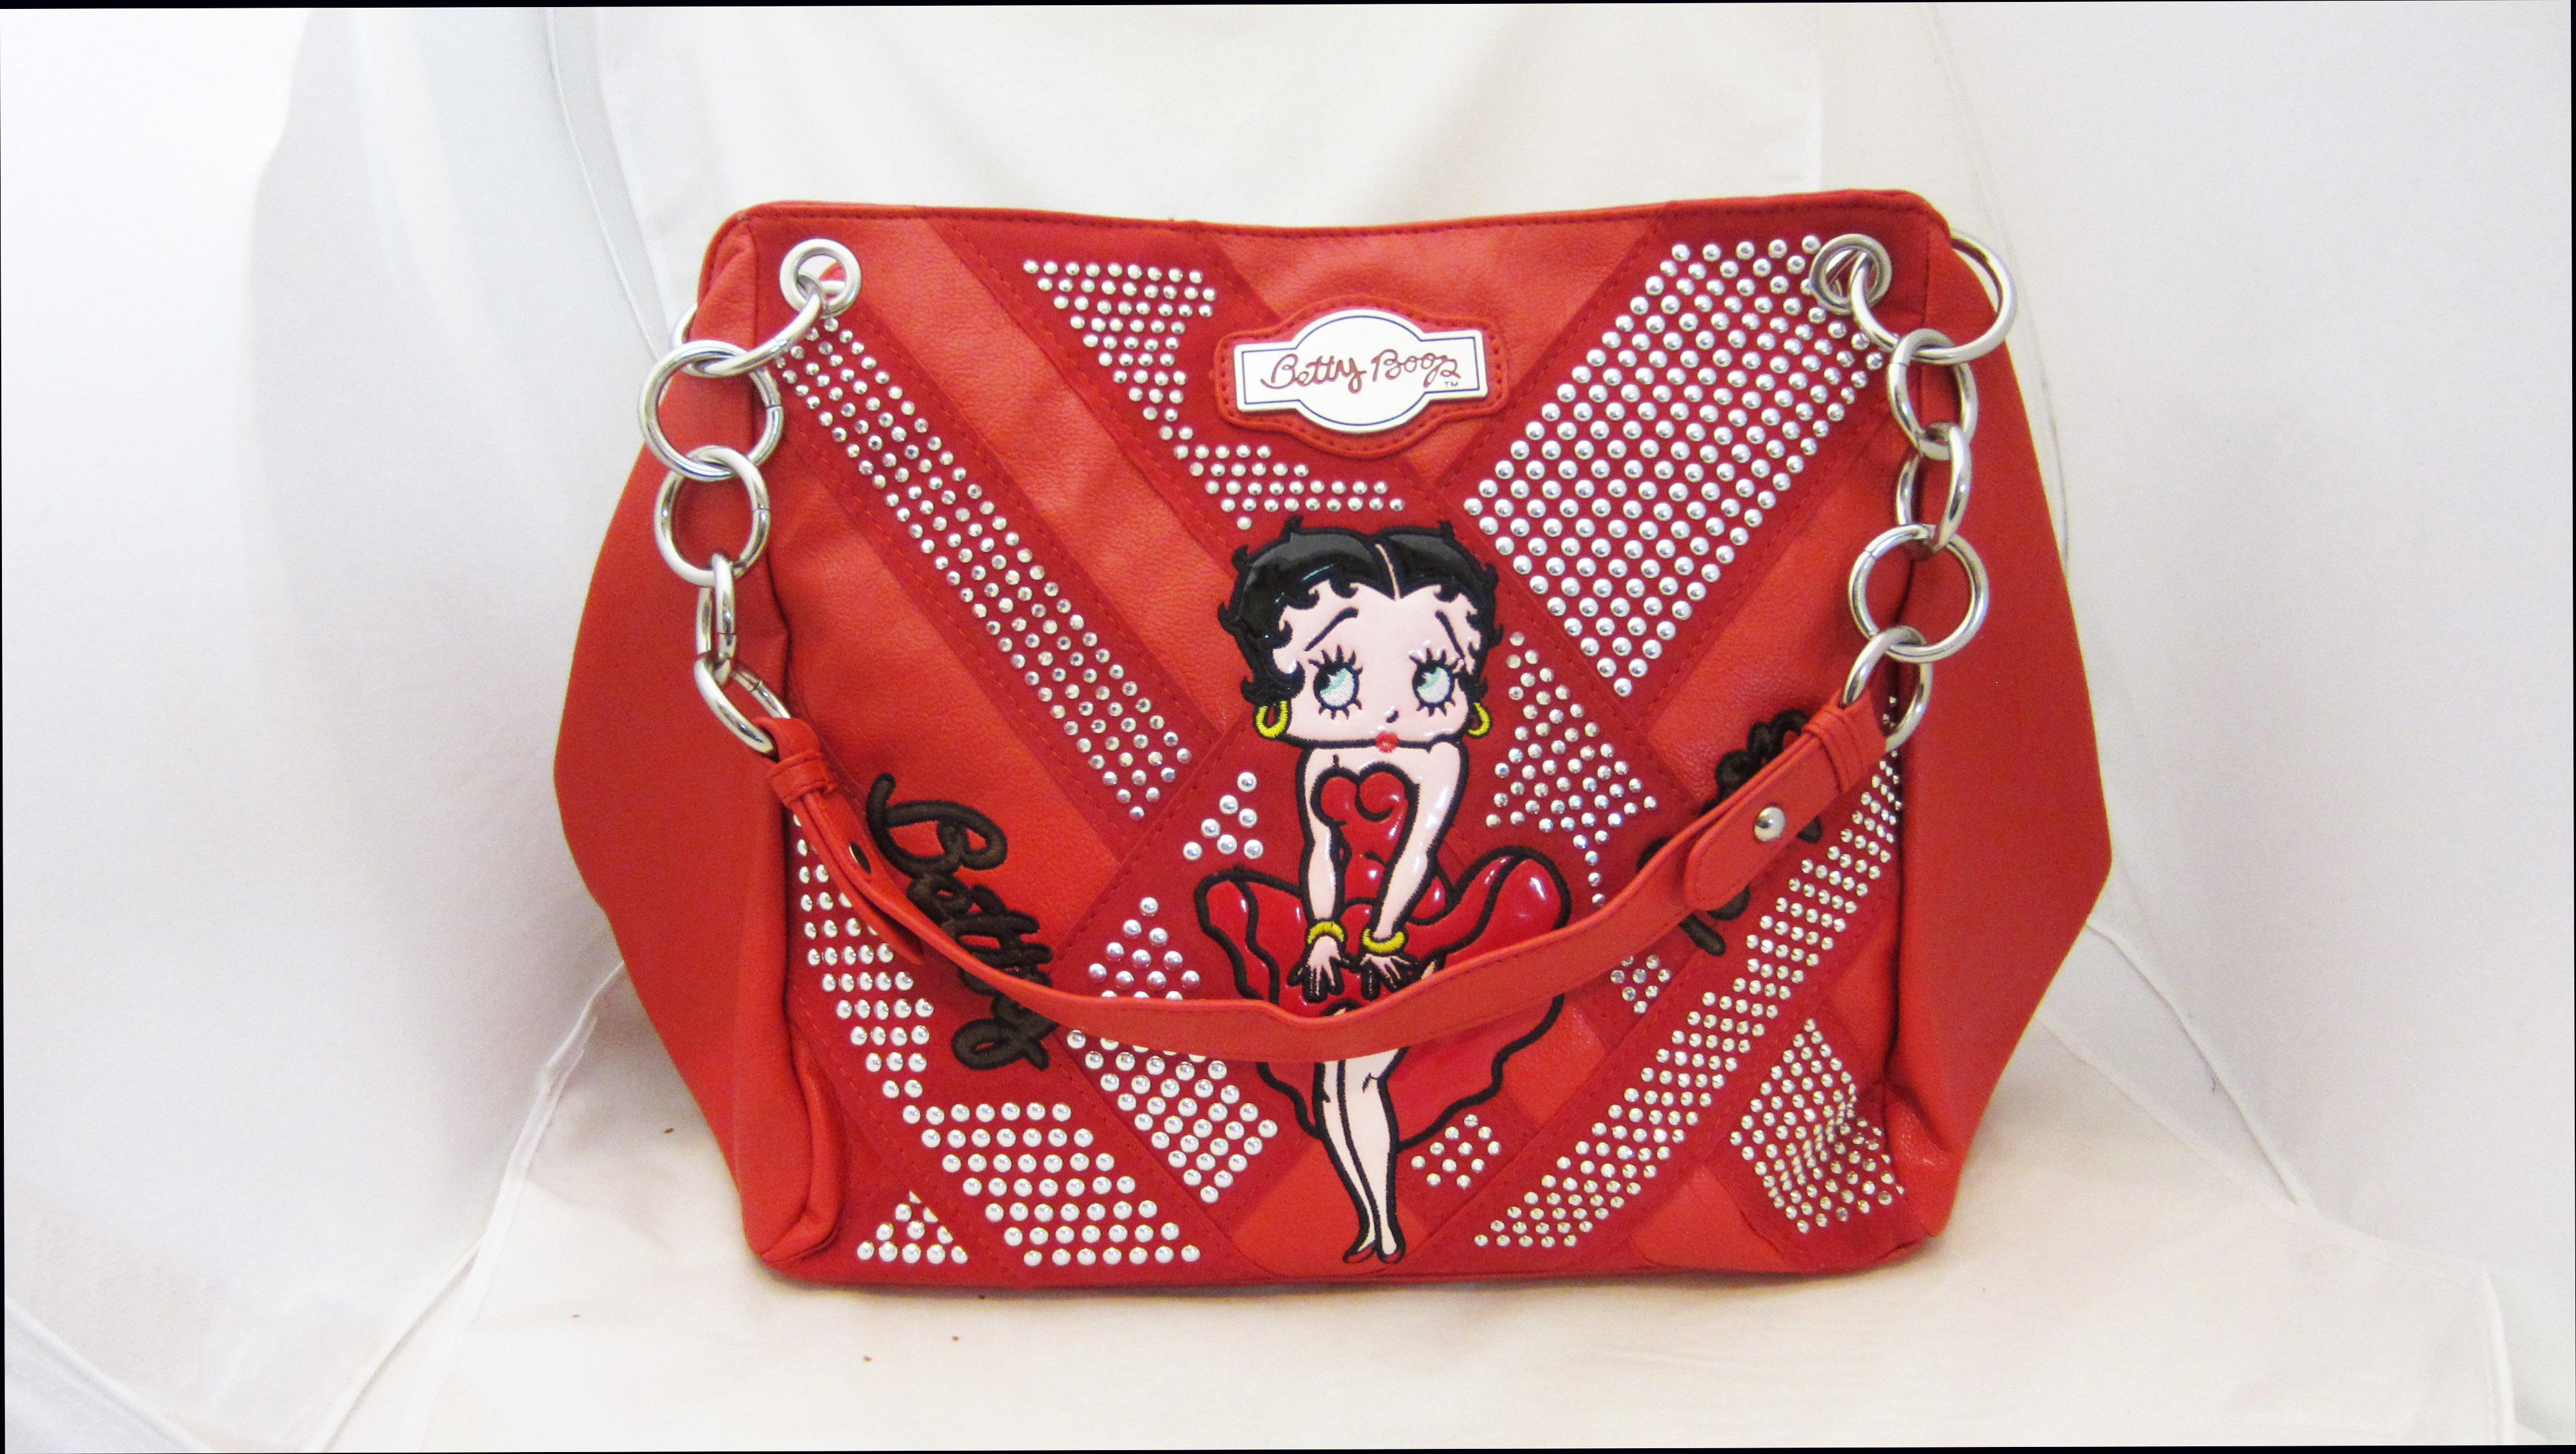 69ef03c396 Betty Boop Leather Chain Handle Purse - Red